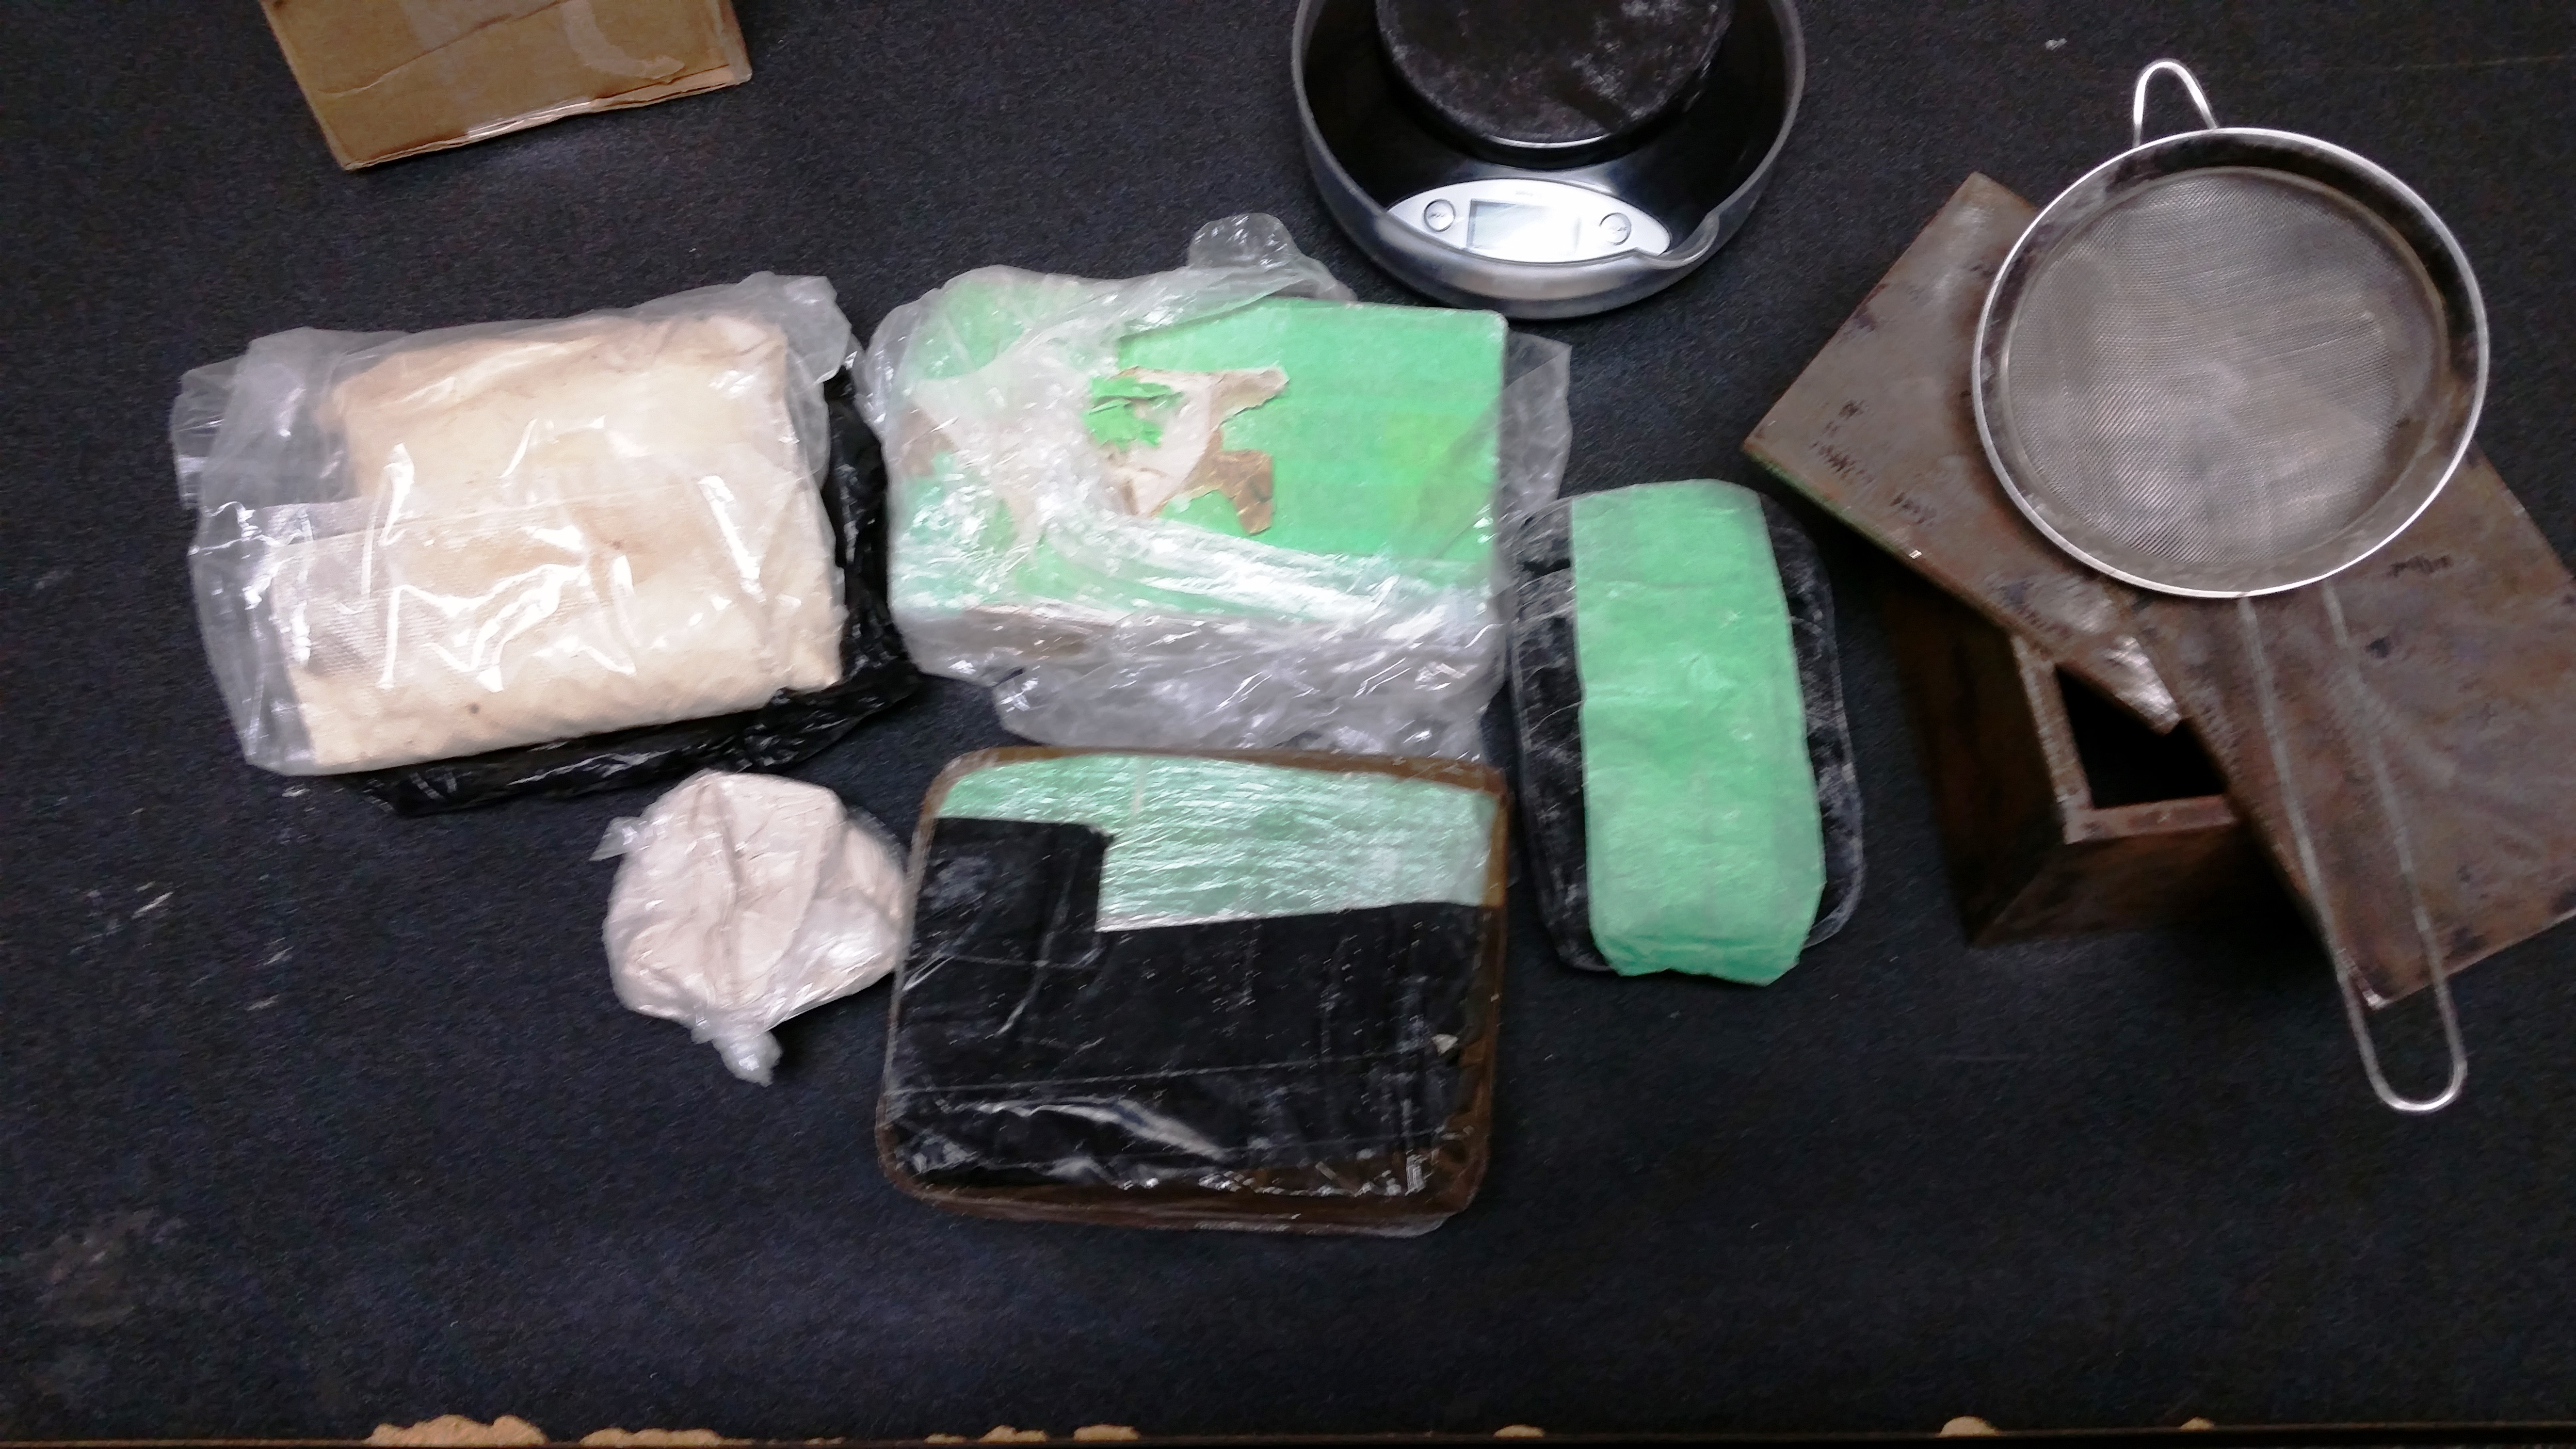 new york heroin bust, new york news, new york, heroin, ocala post